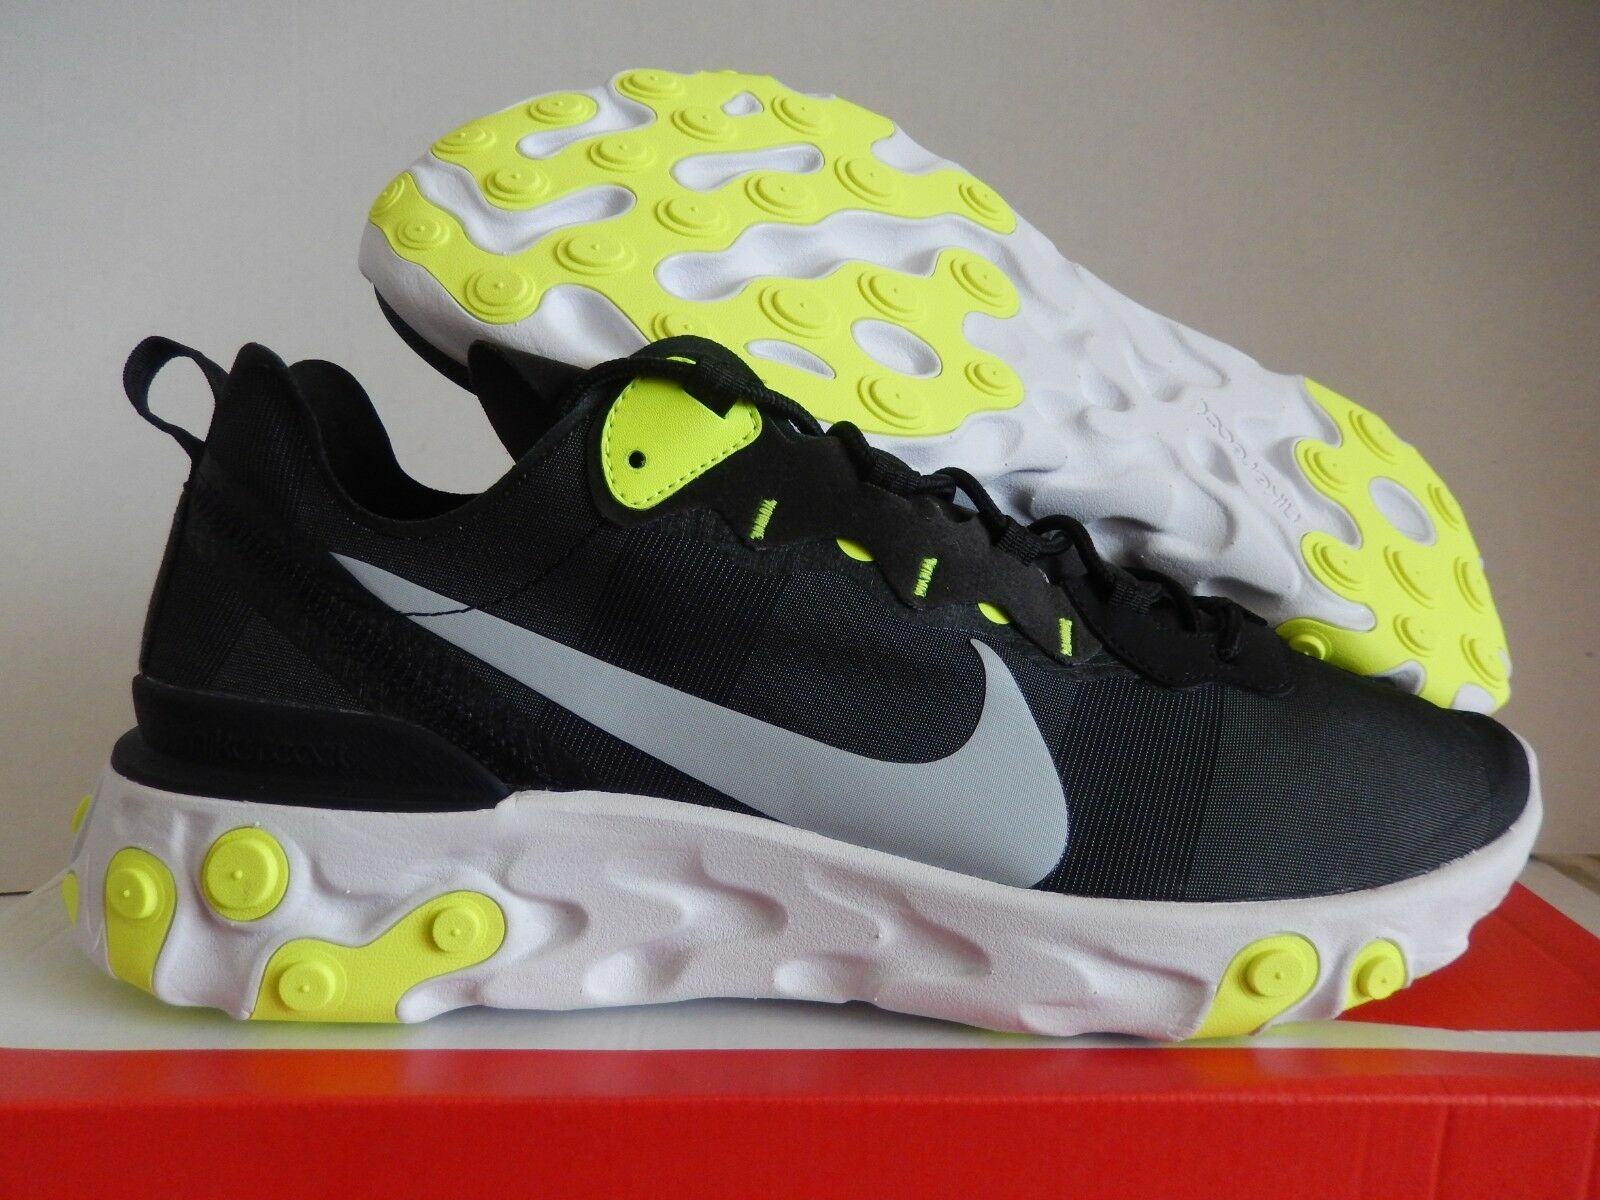 NIKE REACT ELEMENT 55 BLACK-WOLF GREY-VOLT-WHITE SZ 15 [BQ6166-001]